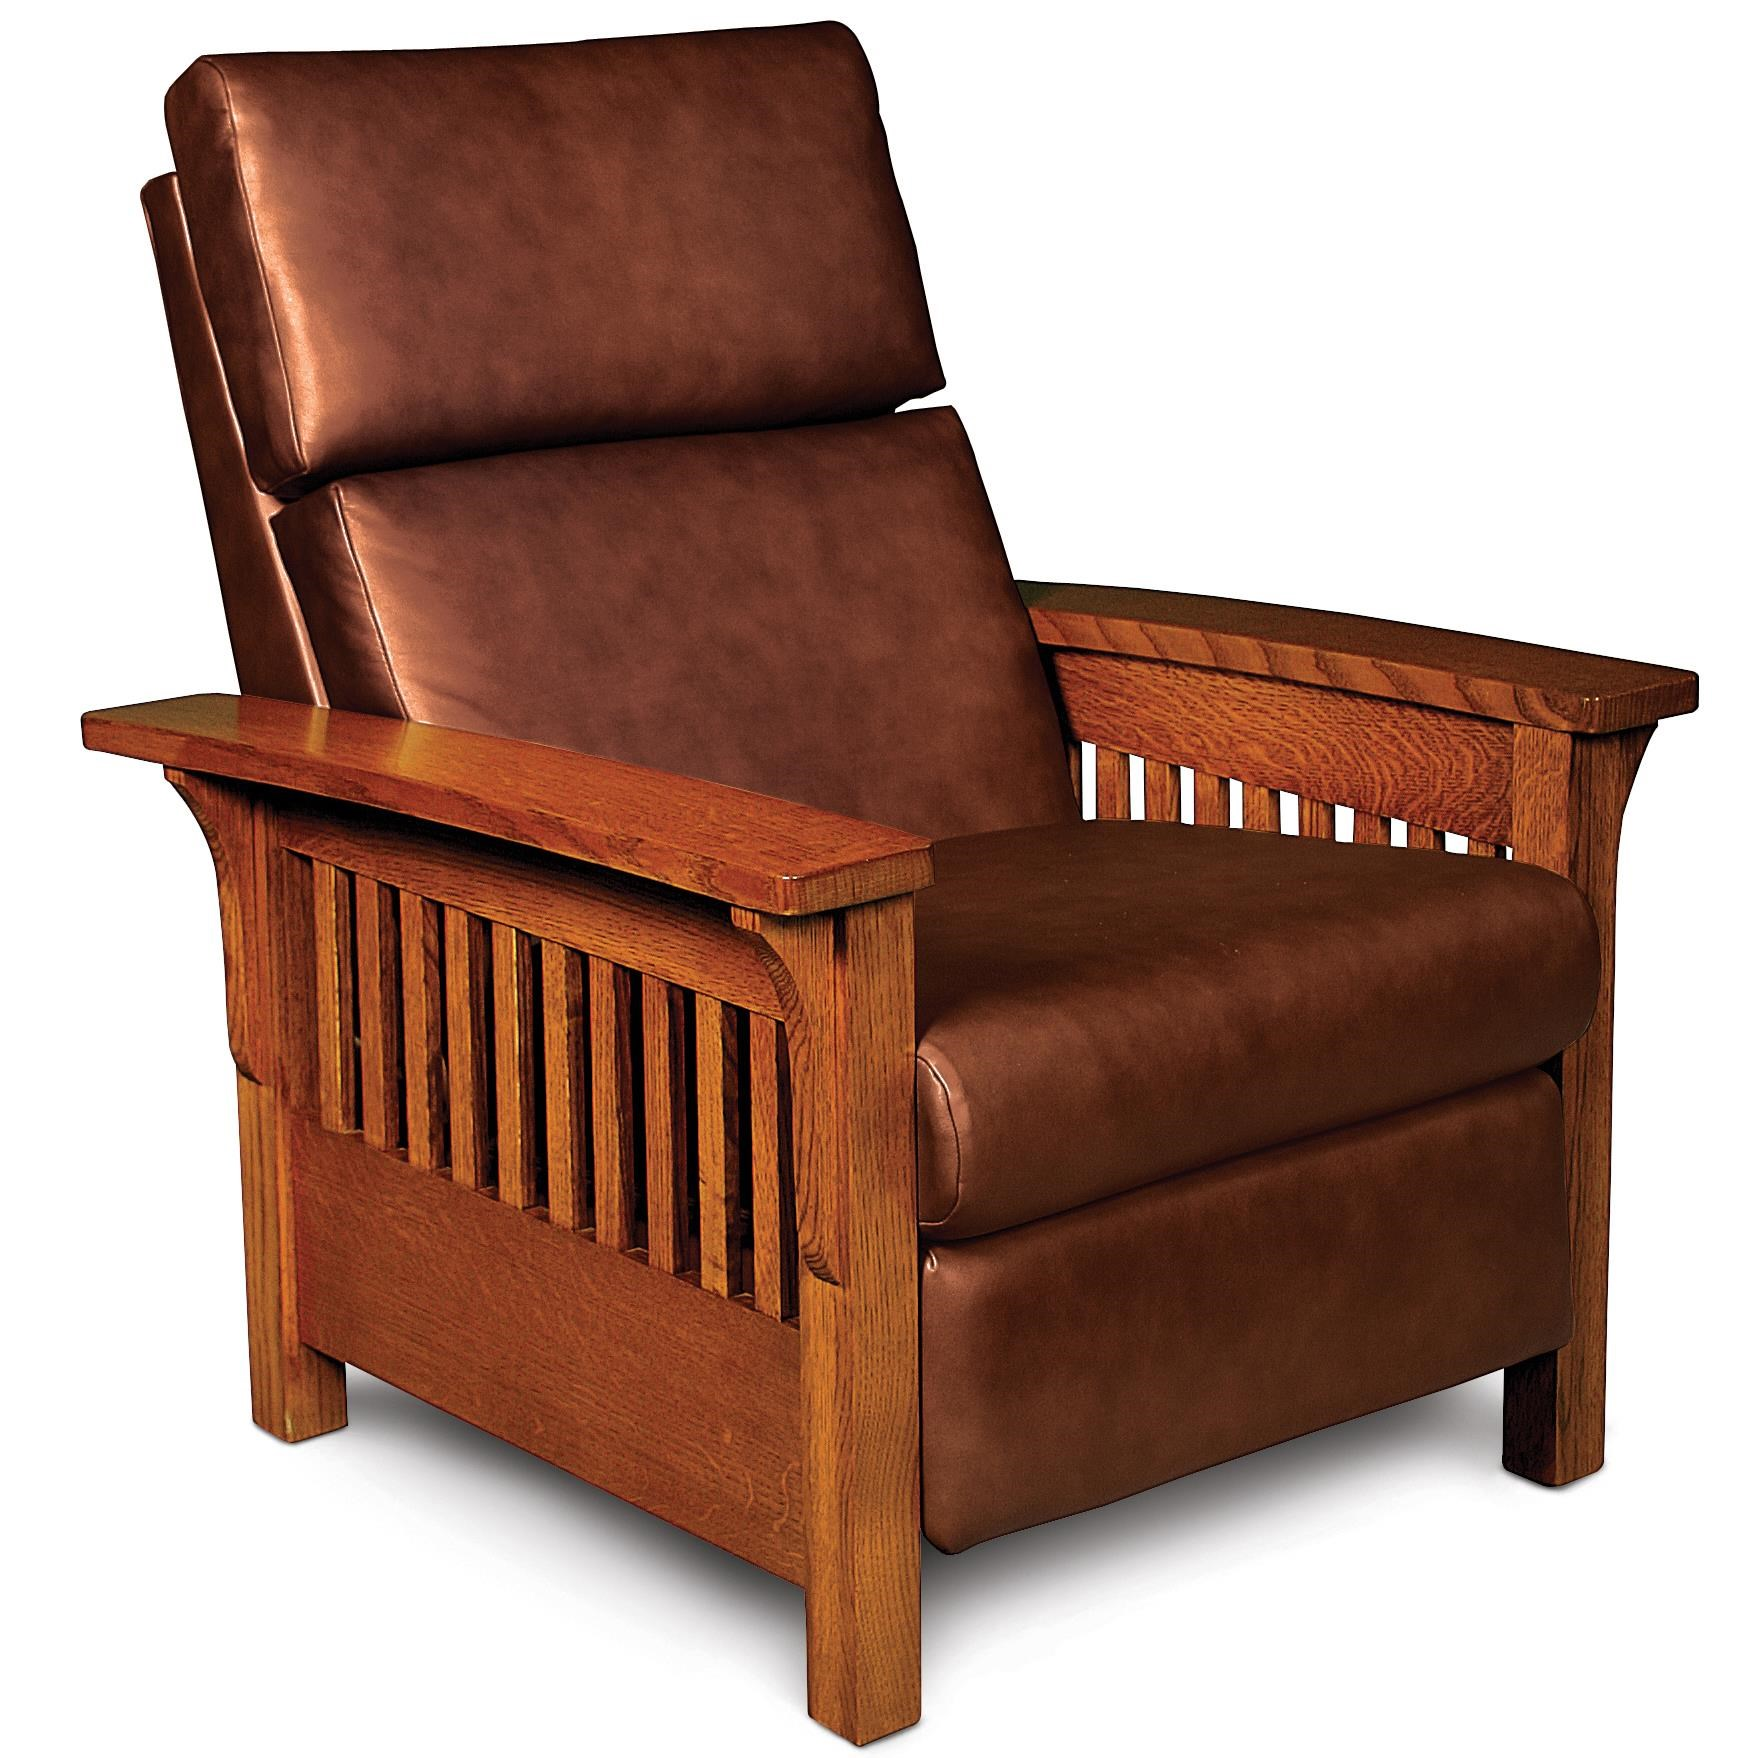 Simply Amish Grand Rapids High Leg Recliner with Wood Arms and Sides - Dunk u0026 Bright Furniture - High Leg Recliners  sc 1 st  Dunk u0026 Bright Furniture & Simply Amish Grand Rapids High Leg Recliner with Wood Arms and ... islam-shia.org